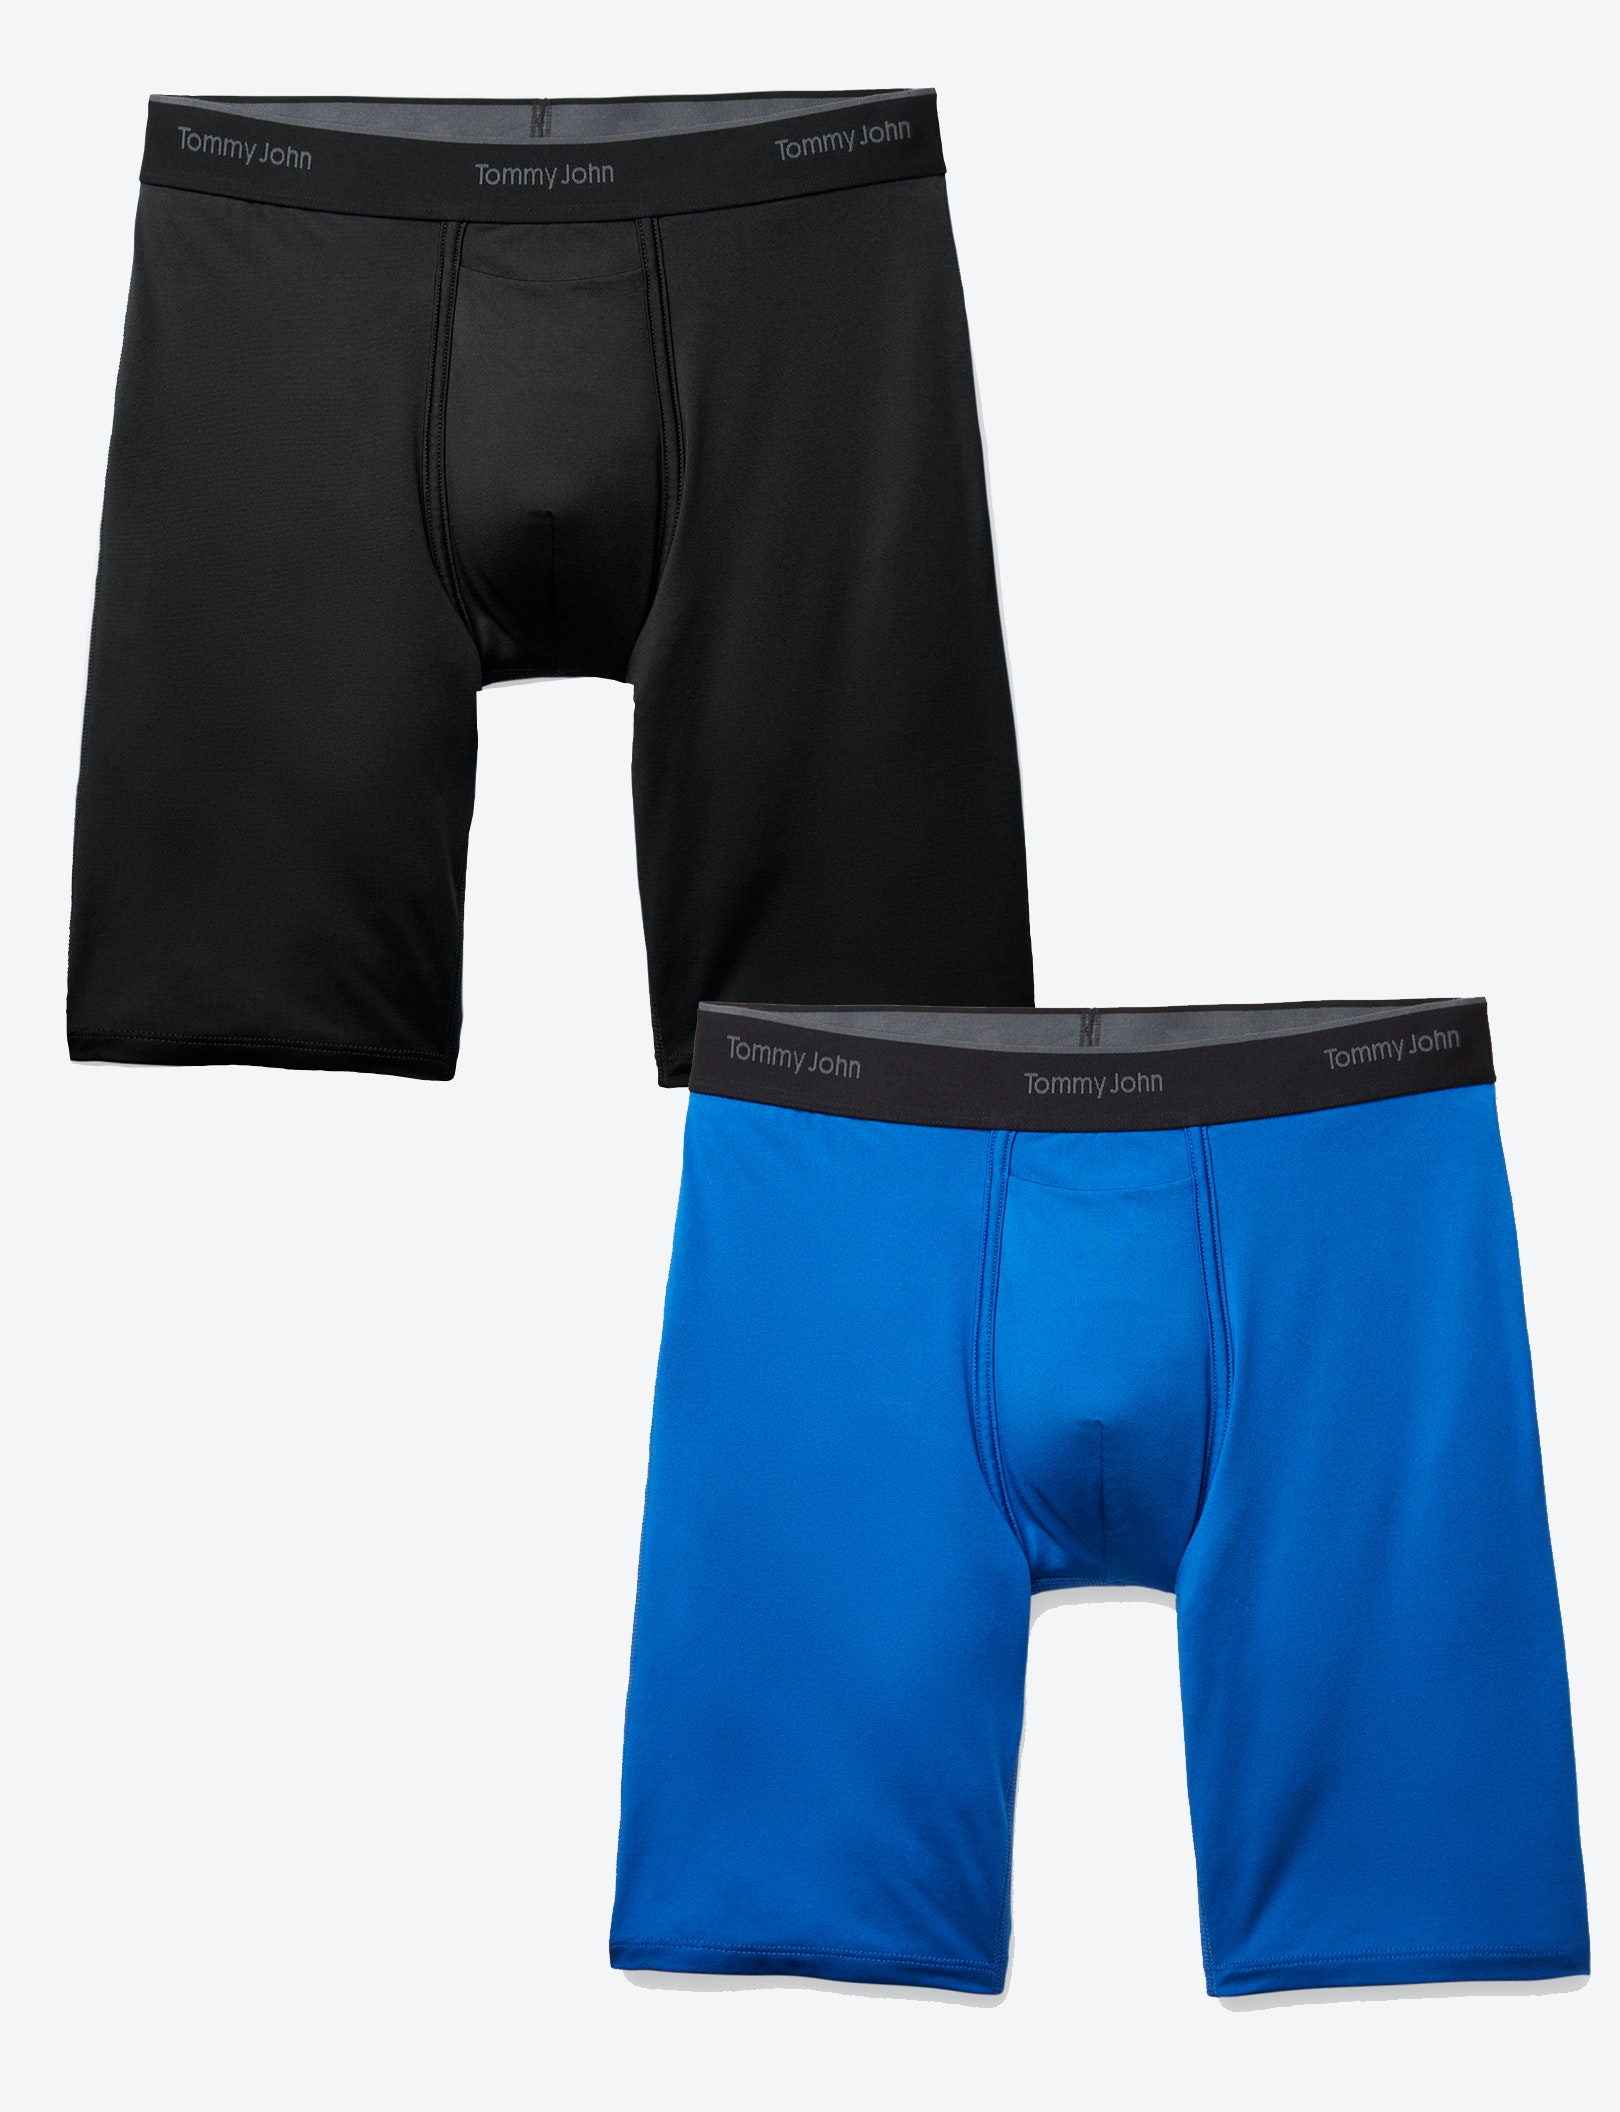 Image of Go Anywhere™ Boxer Brief 2 Pack